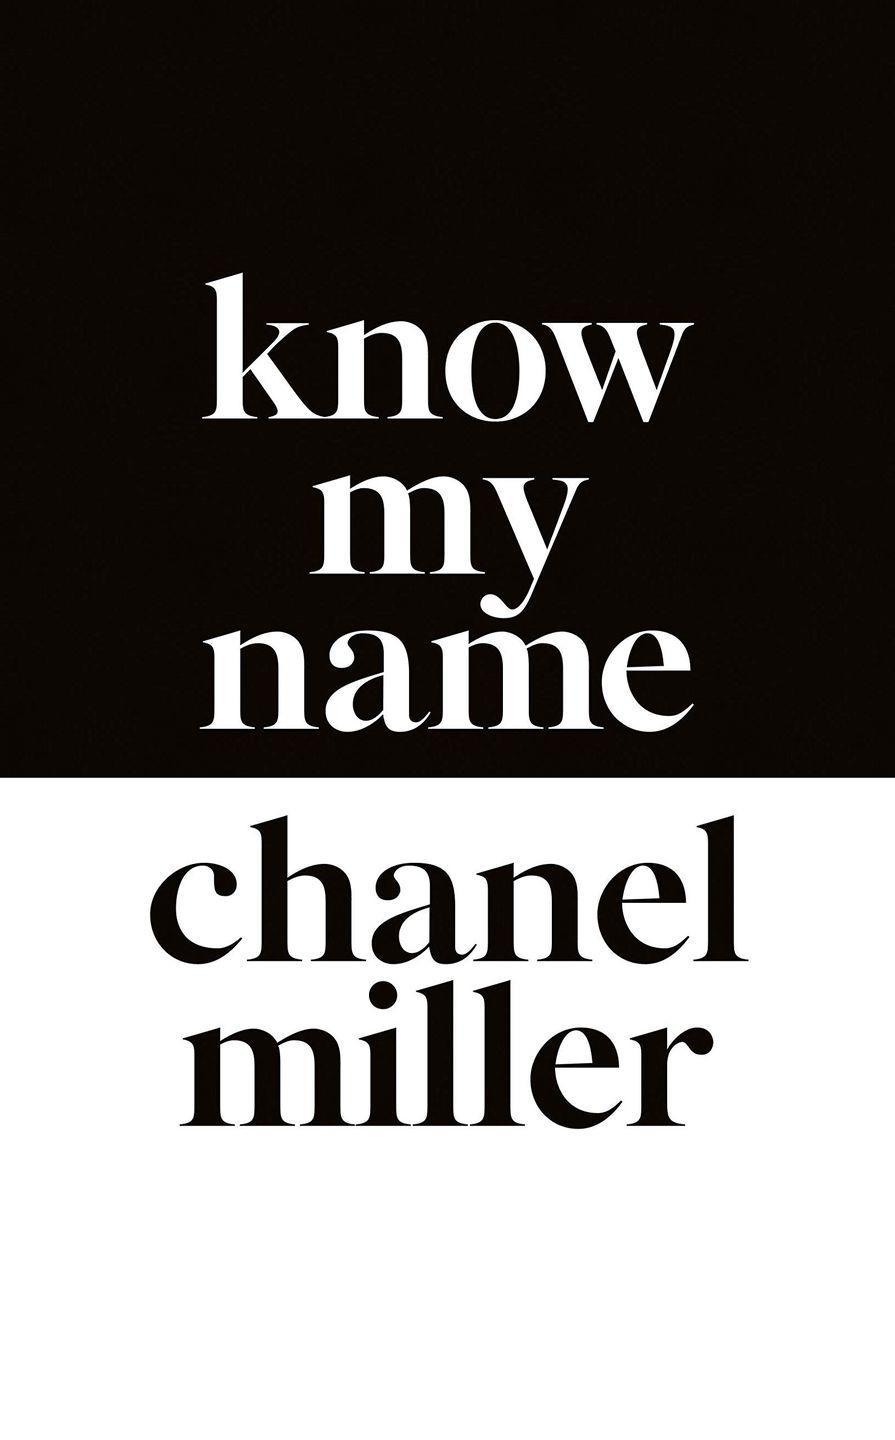 "<p>She was known to the world as Emily Doe after she was sexually assaulted on Stanford University campus. Her victim impact statement went global after her attacker was sentenced to just six months in jail. In this powerful and important memoir Chanel Miller tells her own story.</p><p><a class=""link rapid-noclick-resp"" href=""https://www.amazon.co.uk/Know-My-Name-Chanel-Miller/dp/0241428270/ref=sr_1_1?crid=2CWMVDKFCZKB1&dchild=1&keywords=know+my+name+chanel+miller&qid=1587131864&sprefix=know+%2Caps%2C189&sr=8-1&tag=hearstuk-yahoo-21&ascsubtag=%5Bartid%7C1921.g.32141605%5Bsrc%7Cyahoo-uk"" rel=""nofollow noopener"" target=""_blank"" data-ylk=""slk:SHOP NOW"">SHOP NOW</a></p>"